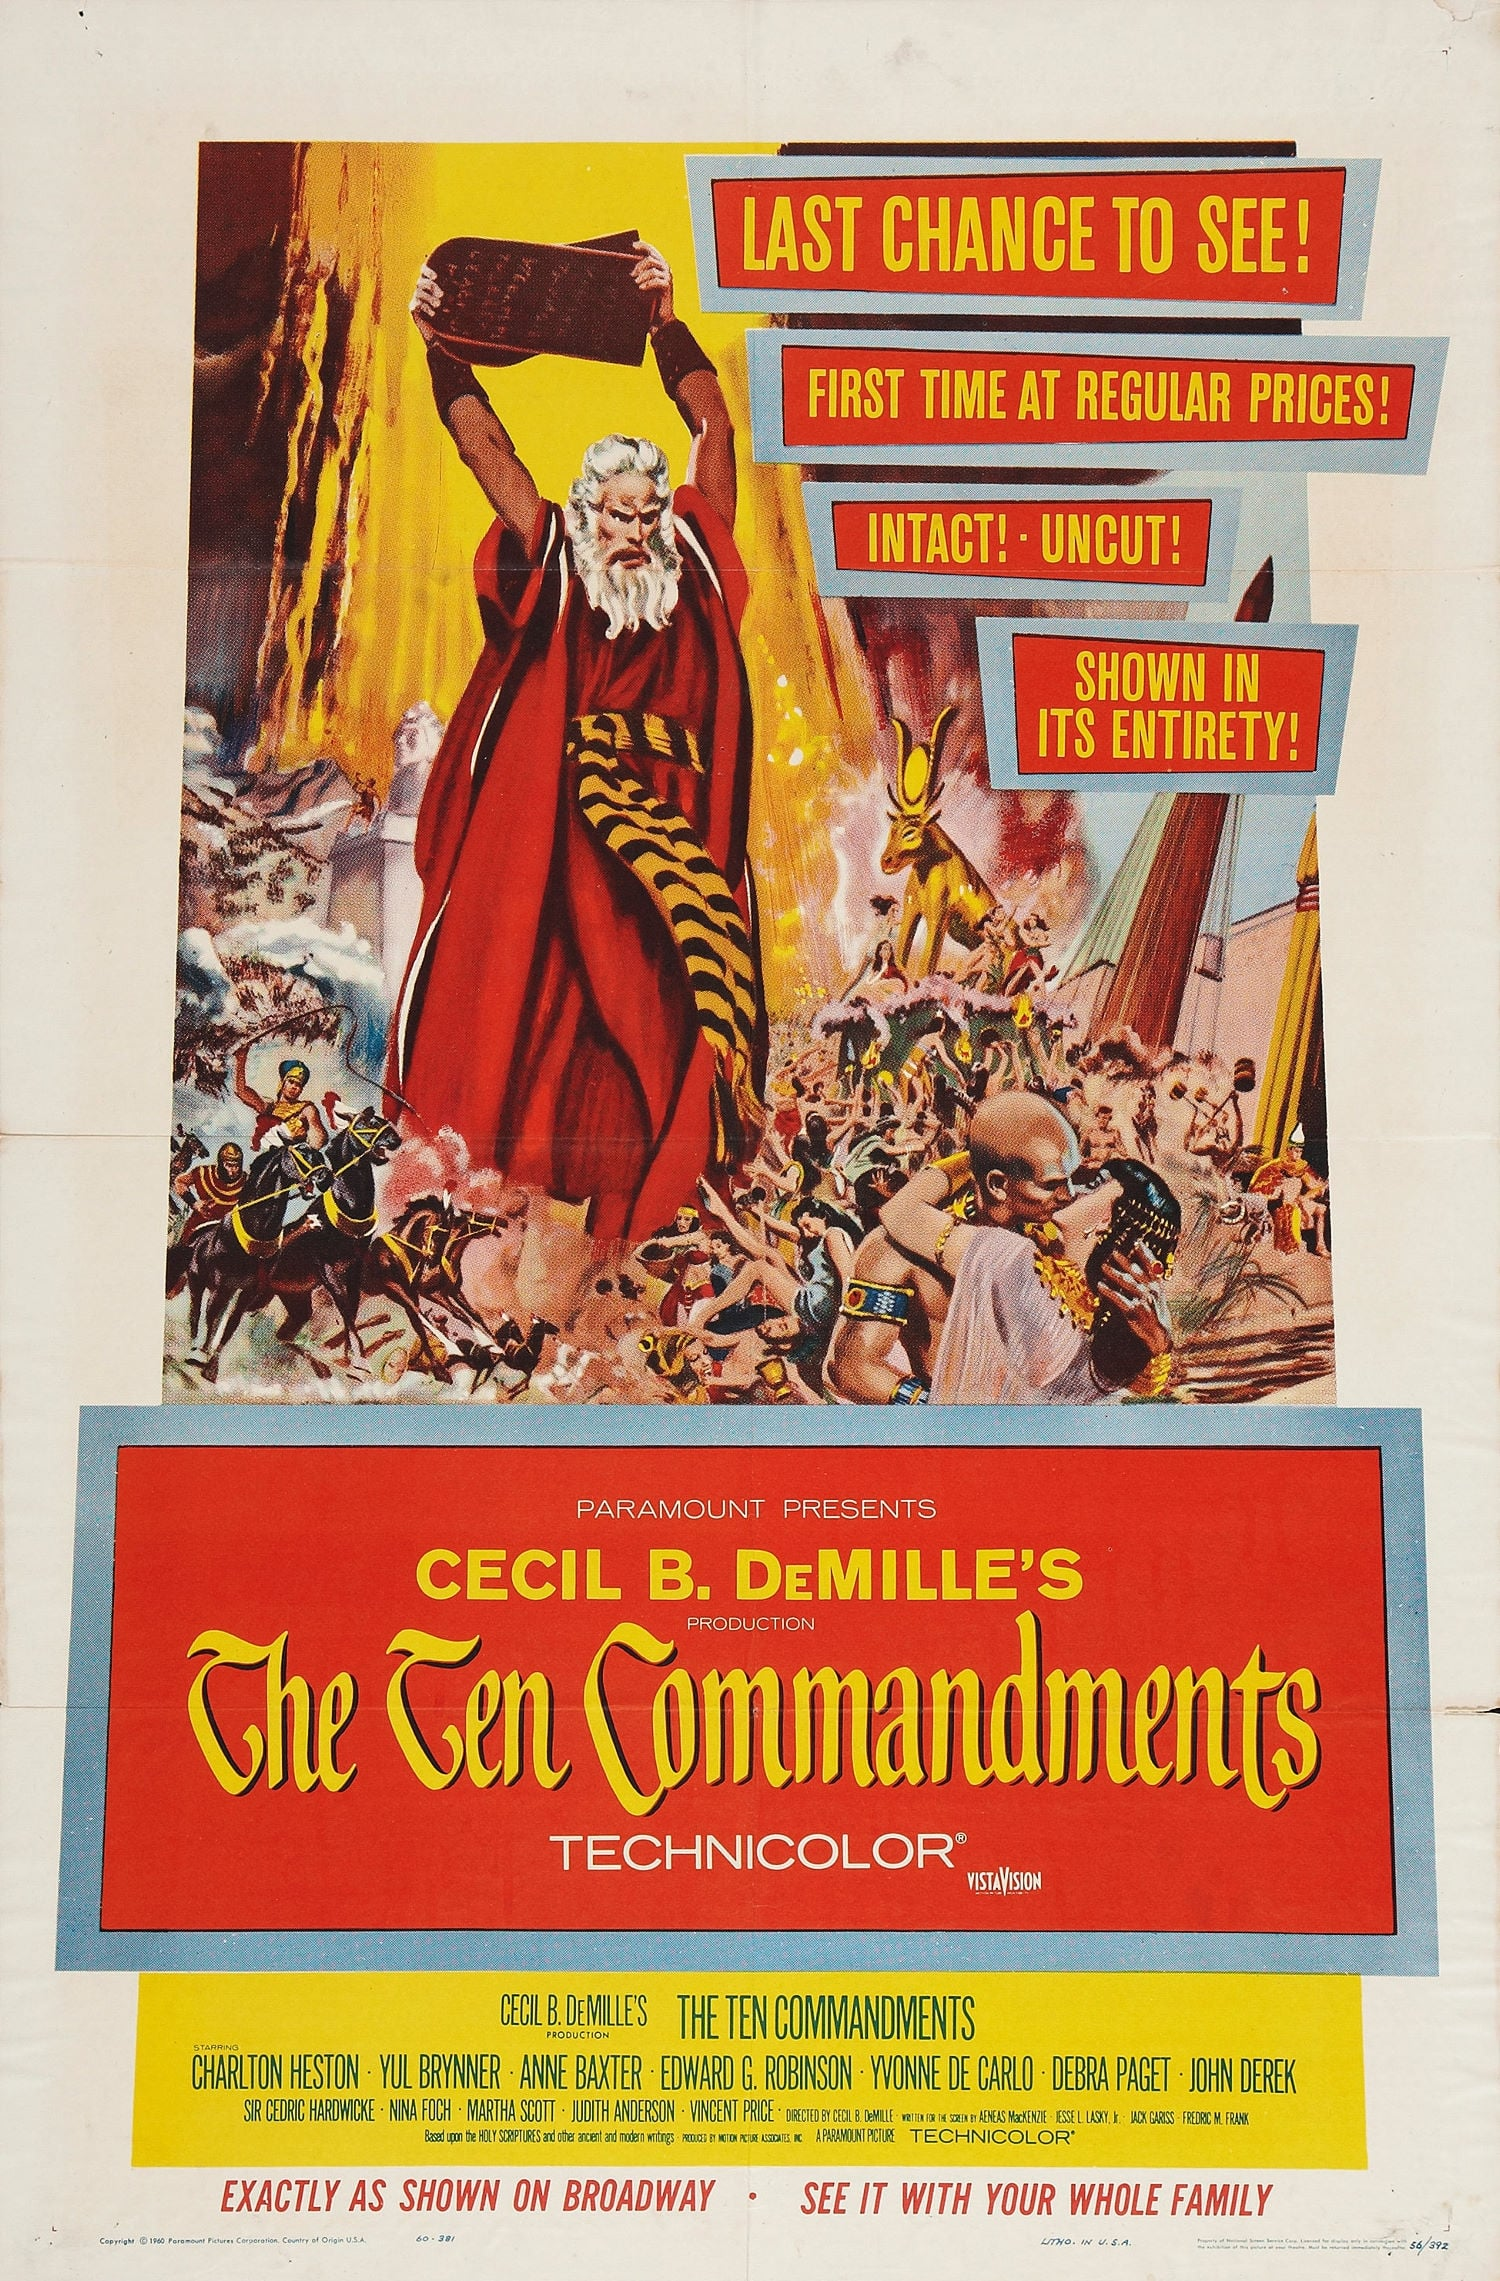 essay ten commandments movie What makes a movie great  what they may see even before the movie  writer of this essay and no longer wish to have the essay published on the.